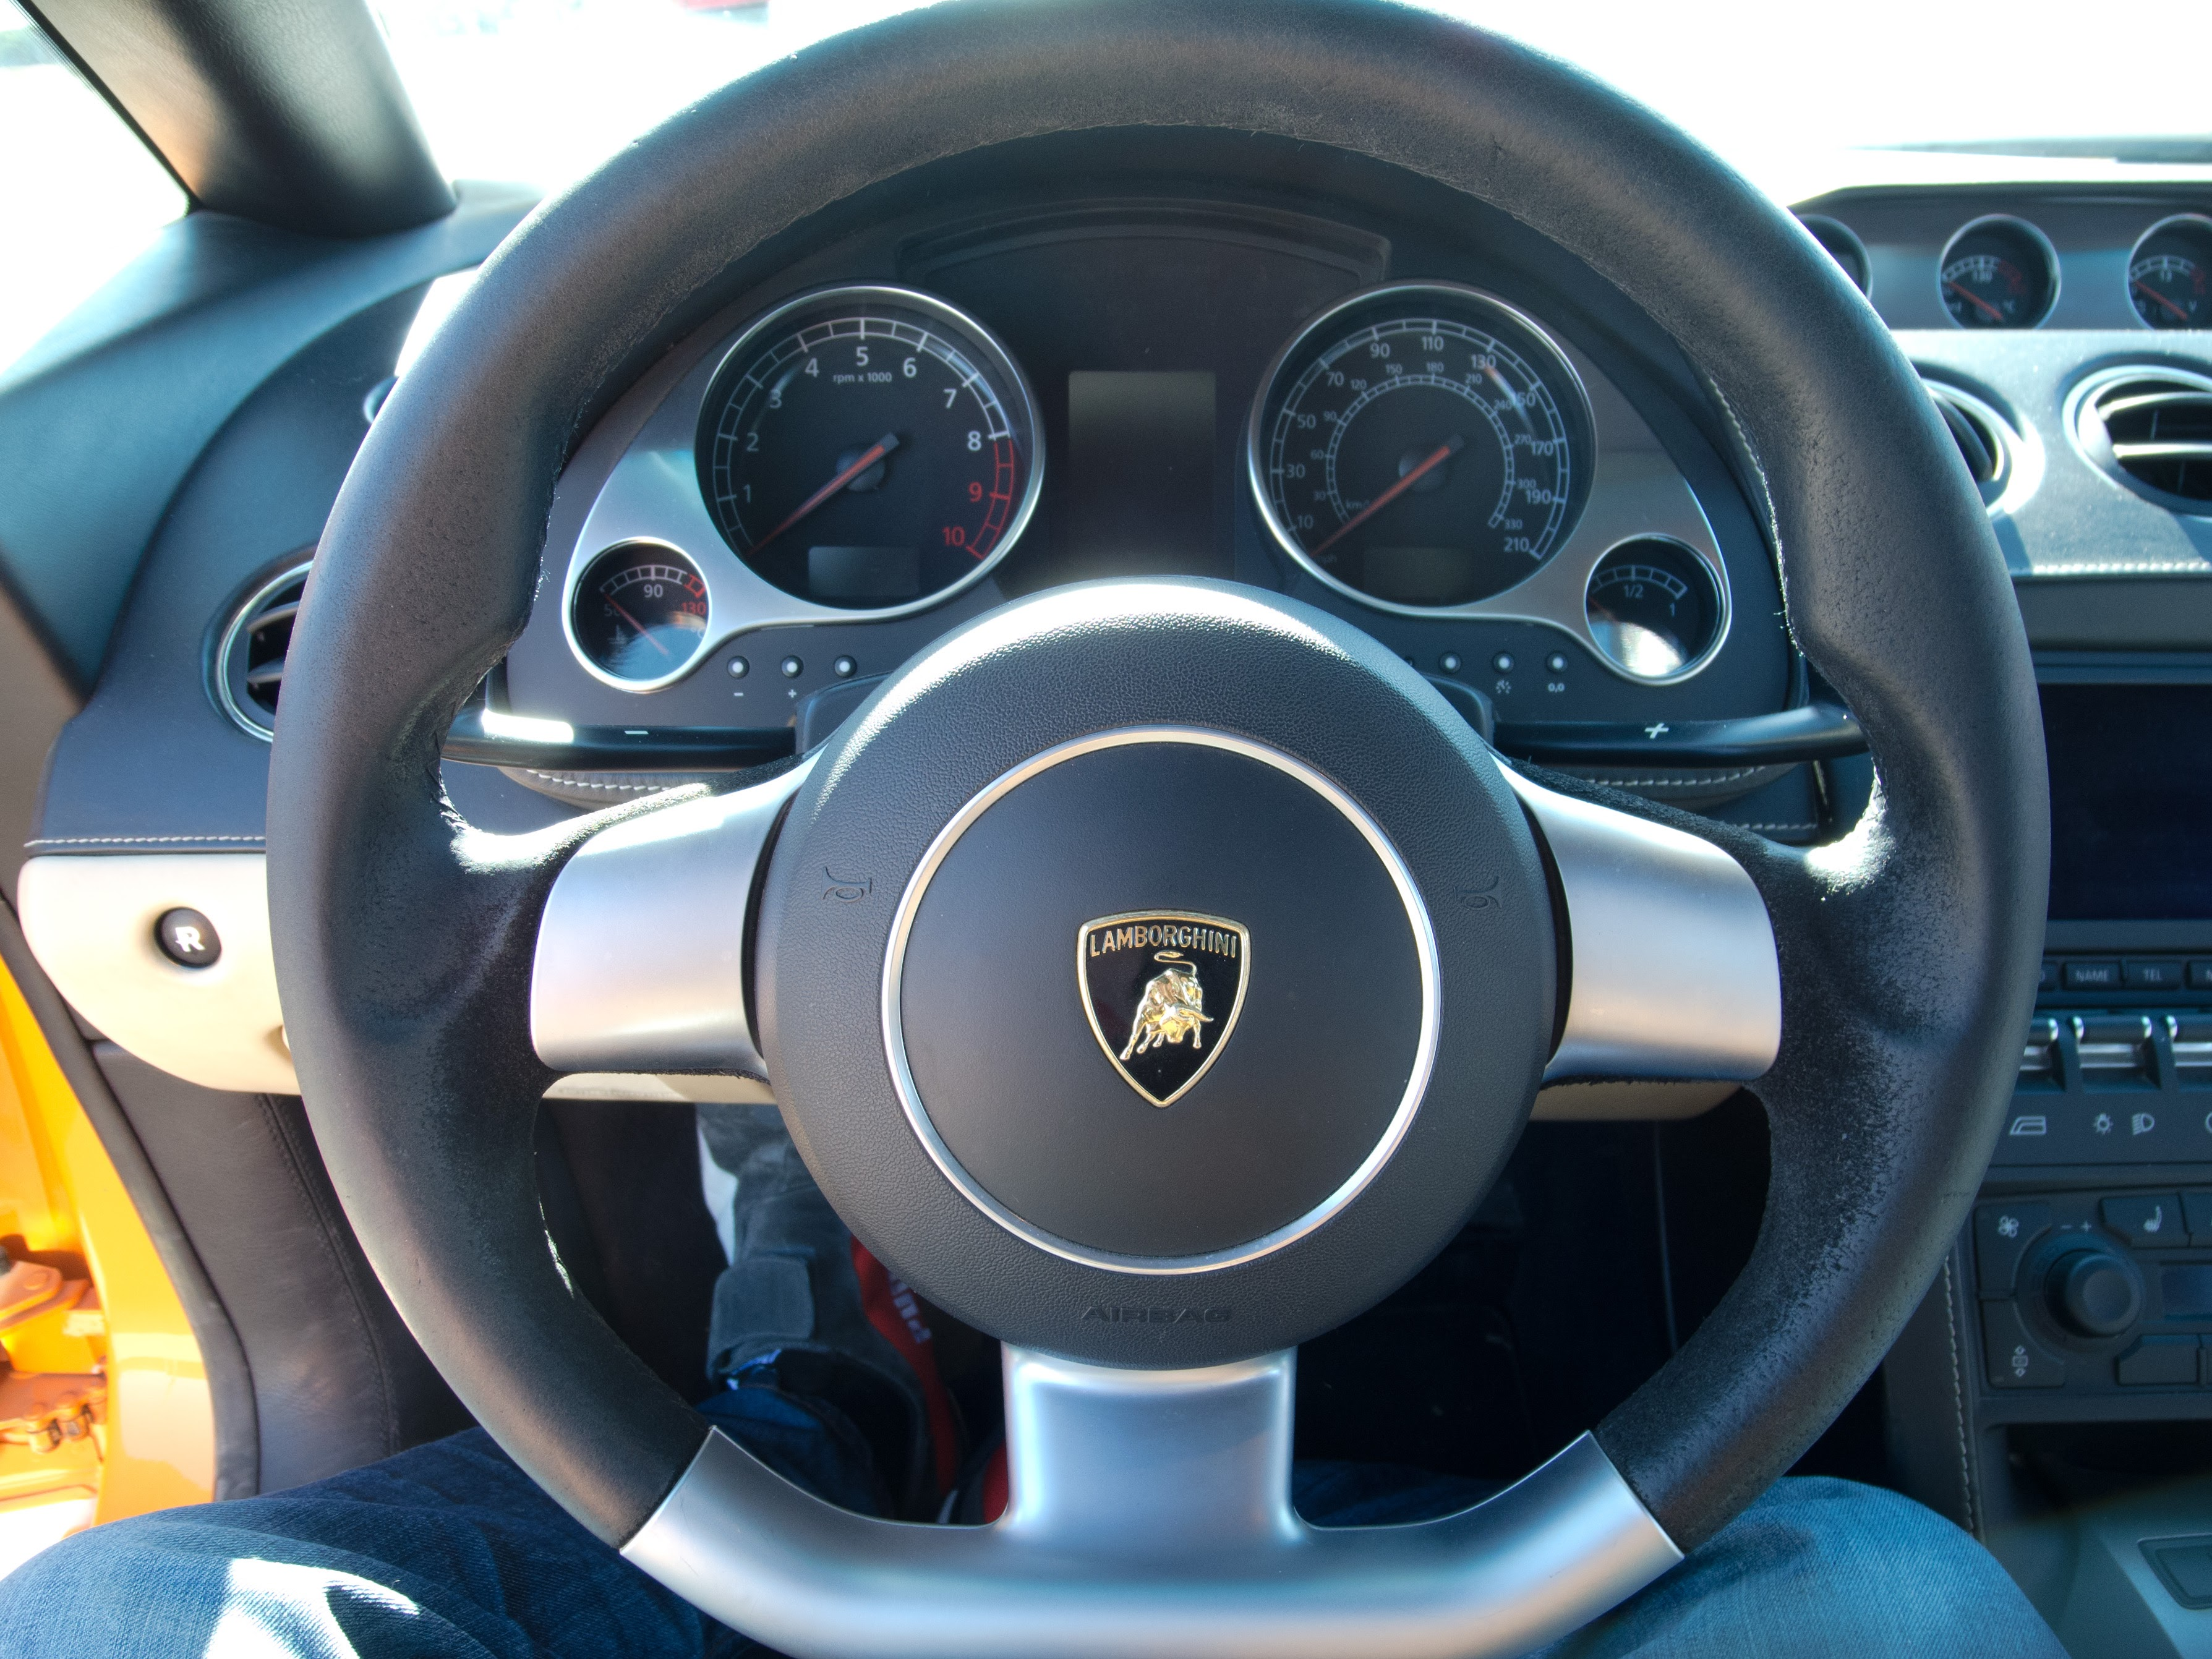 Photo: Gallardo instrument cluster. The tach and speedo are very small compared to the Ferraris.